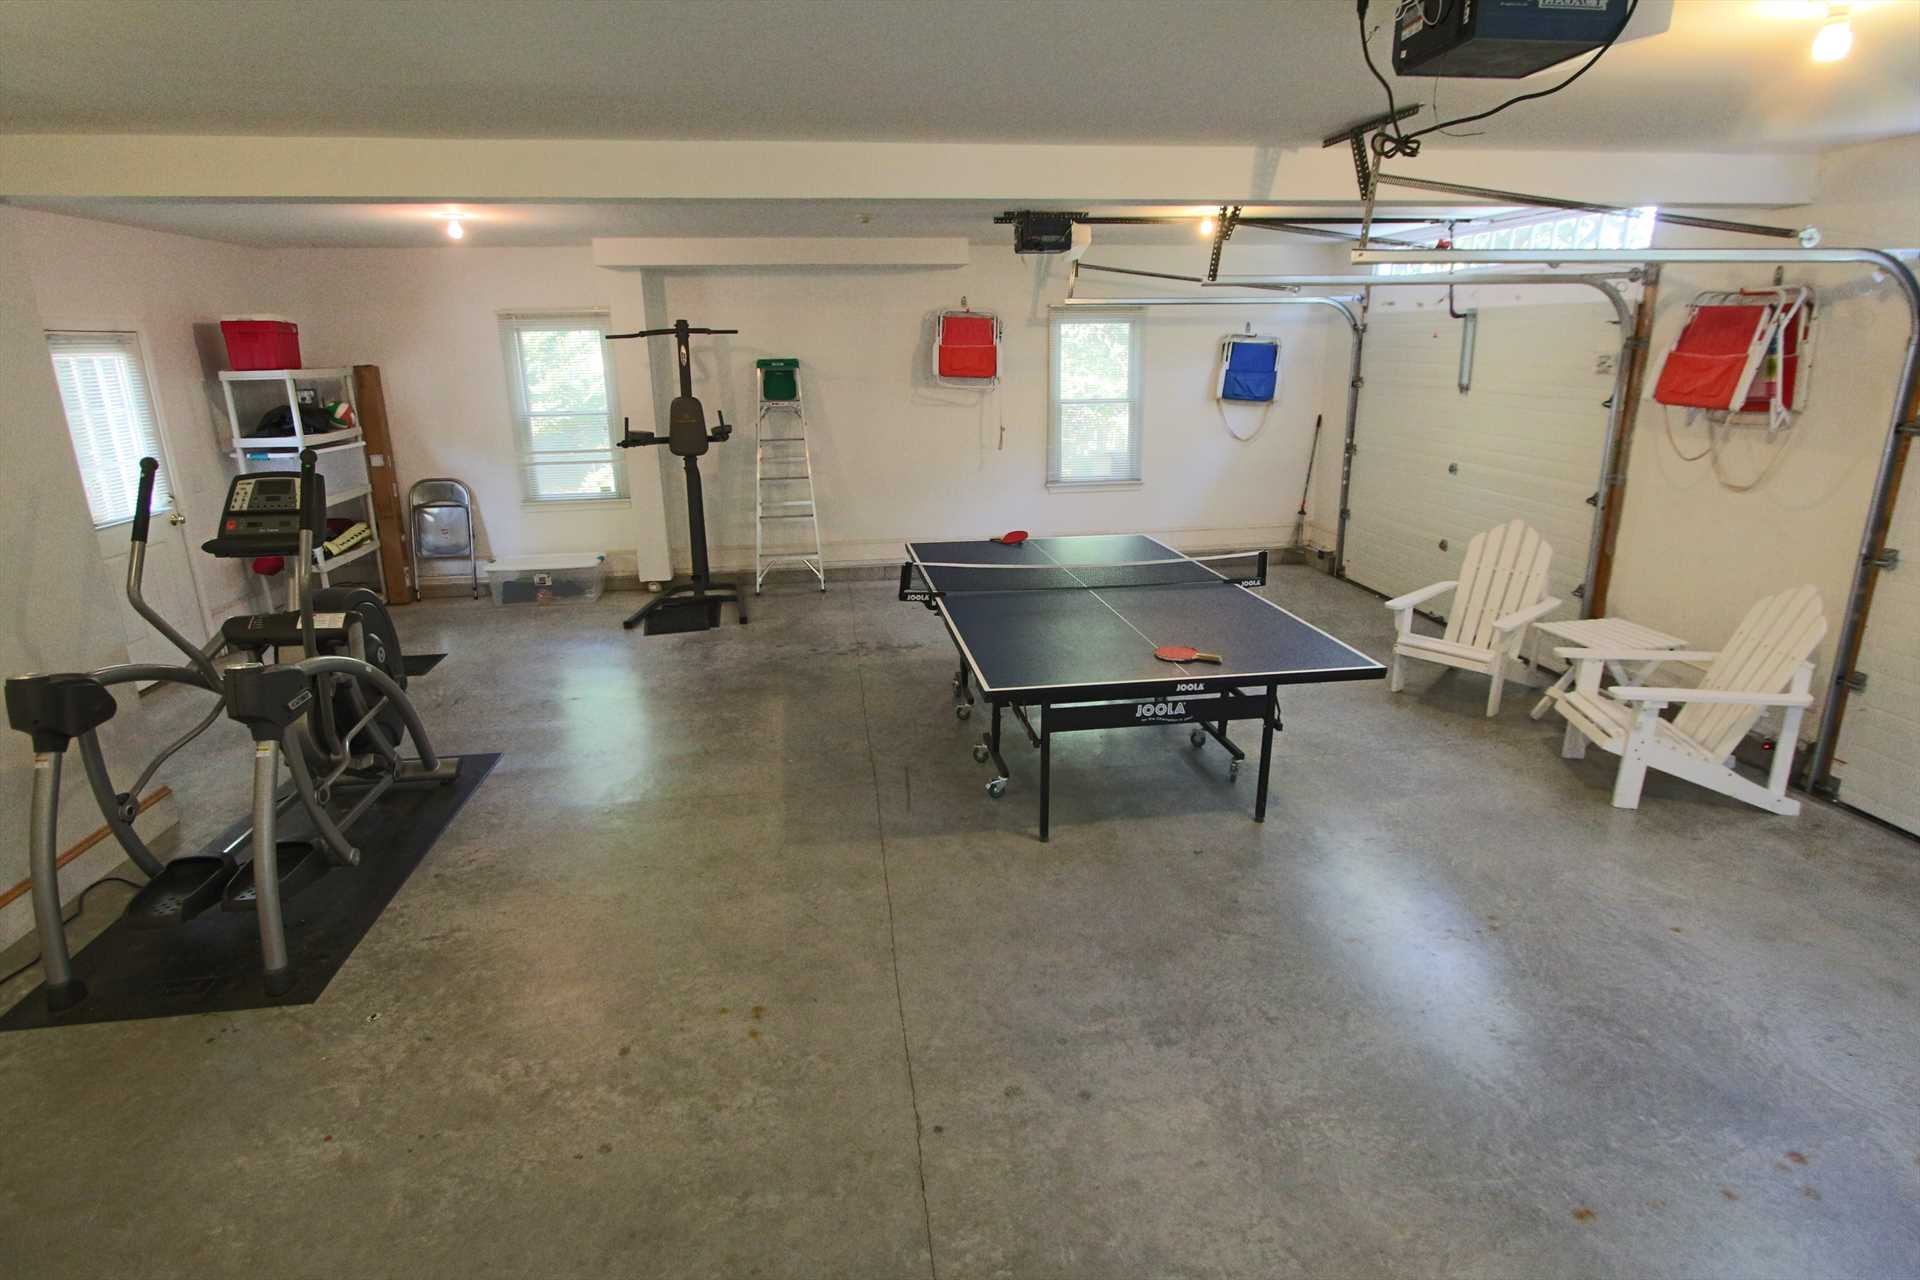 Garage with Ping Pong - Access to Studio Above Garage